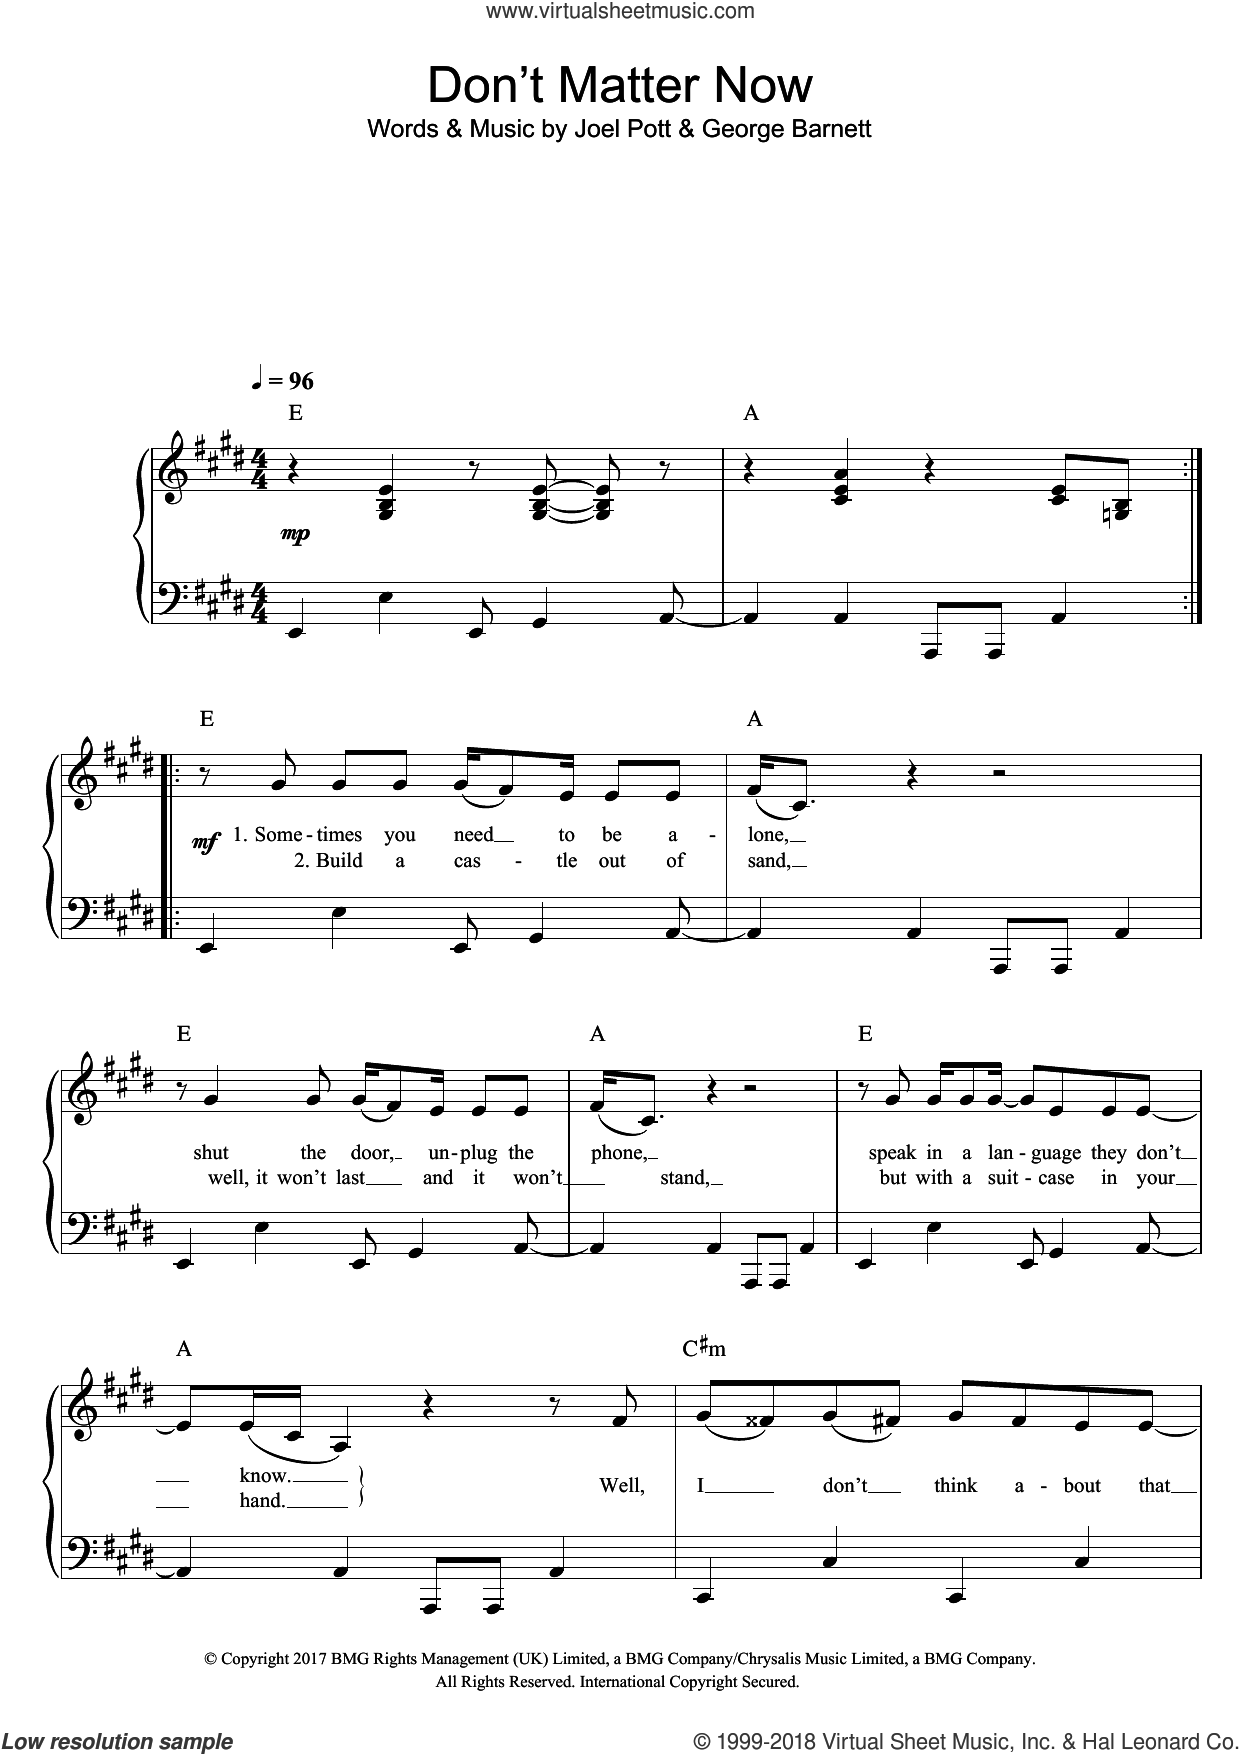 Don't Matter Now sheet music for piano solo by George Ezra, George Barnett and Joel Pott, easy skill level